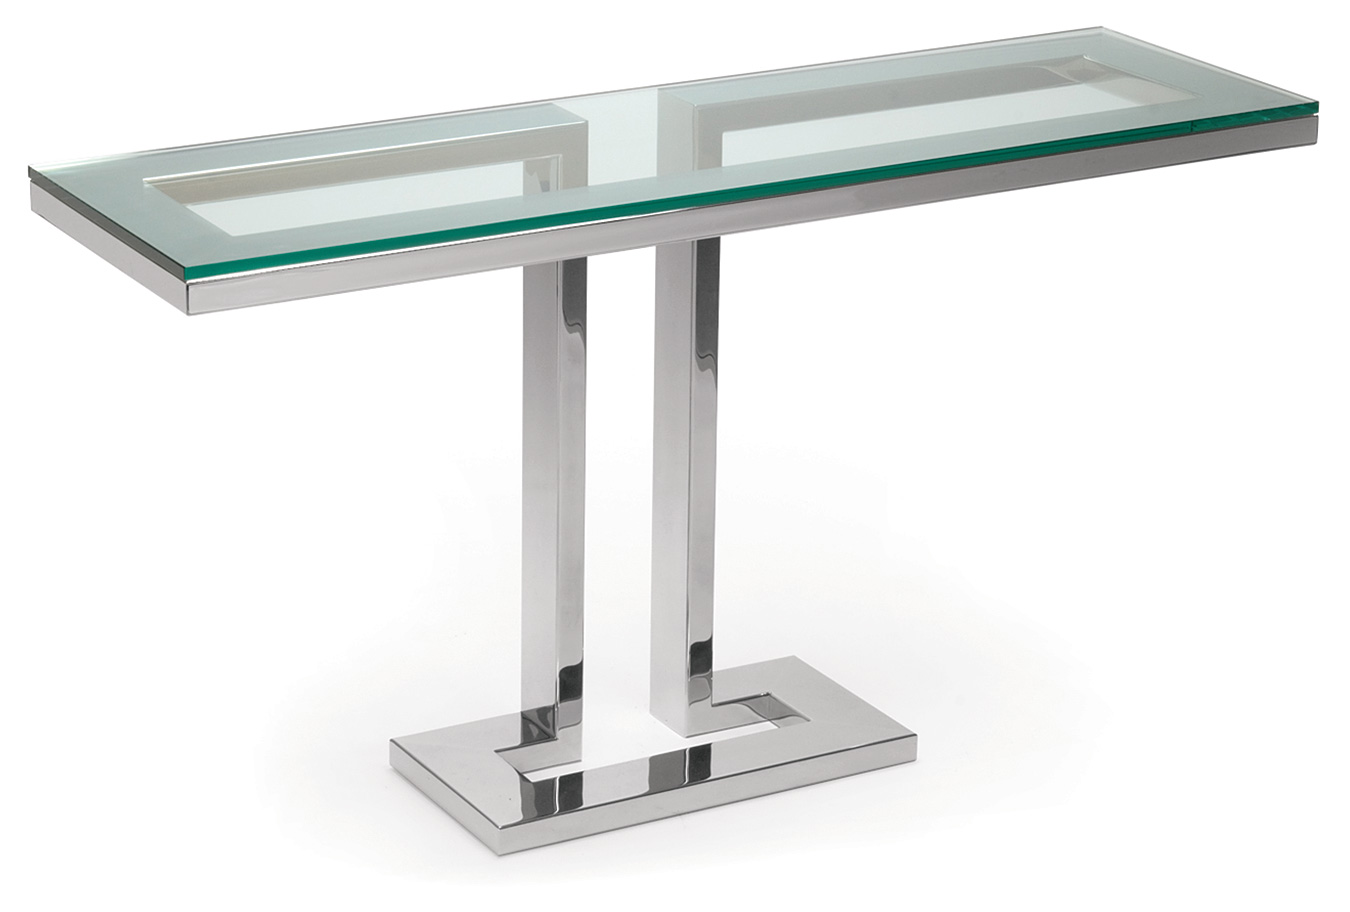 Magnificent Stainless Steel and Glass Console Tables 1350 x 912 · 102 kB · jpeg